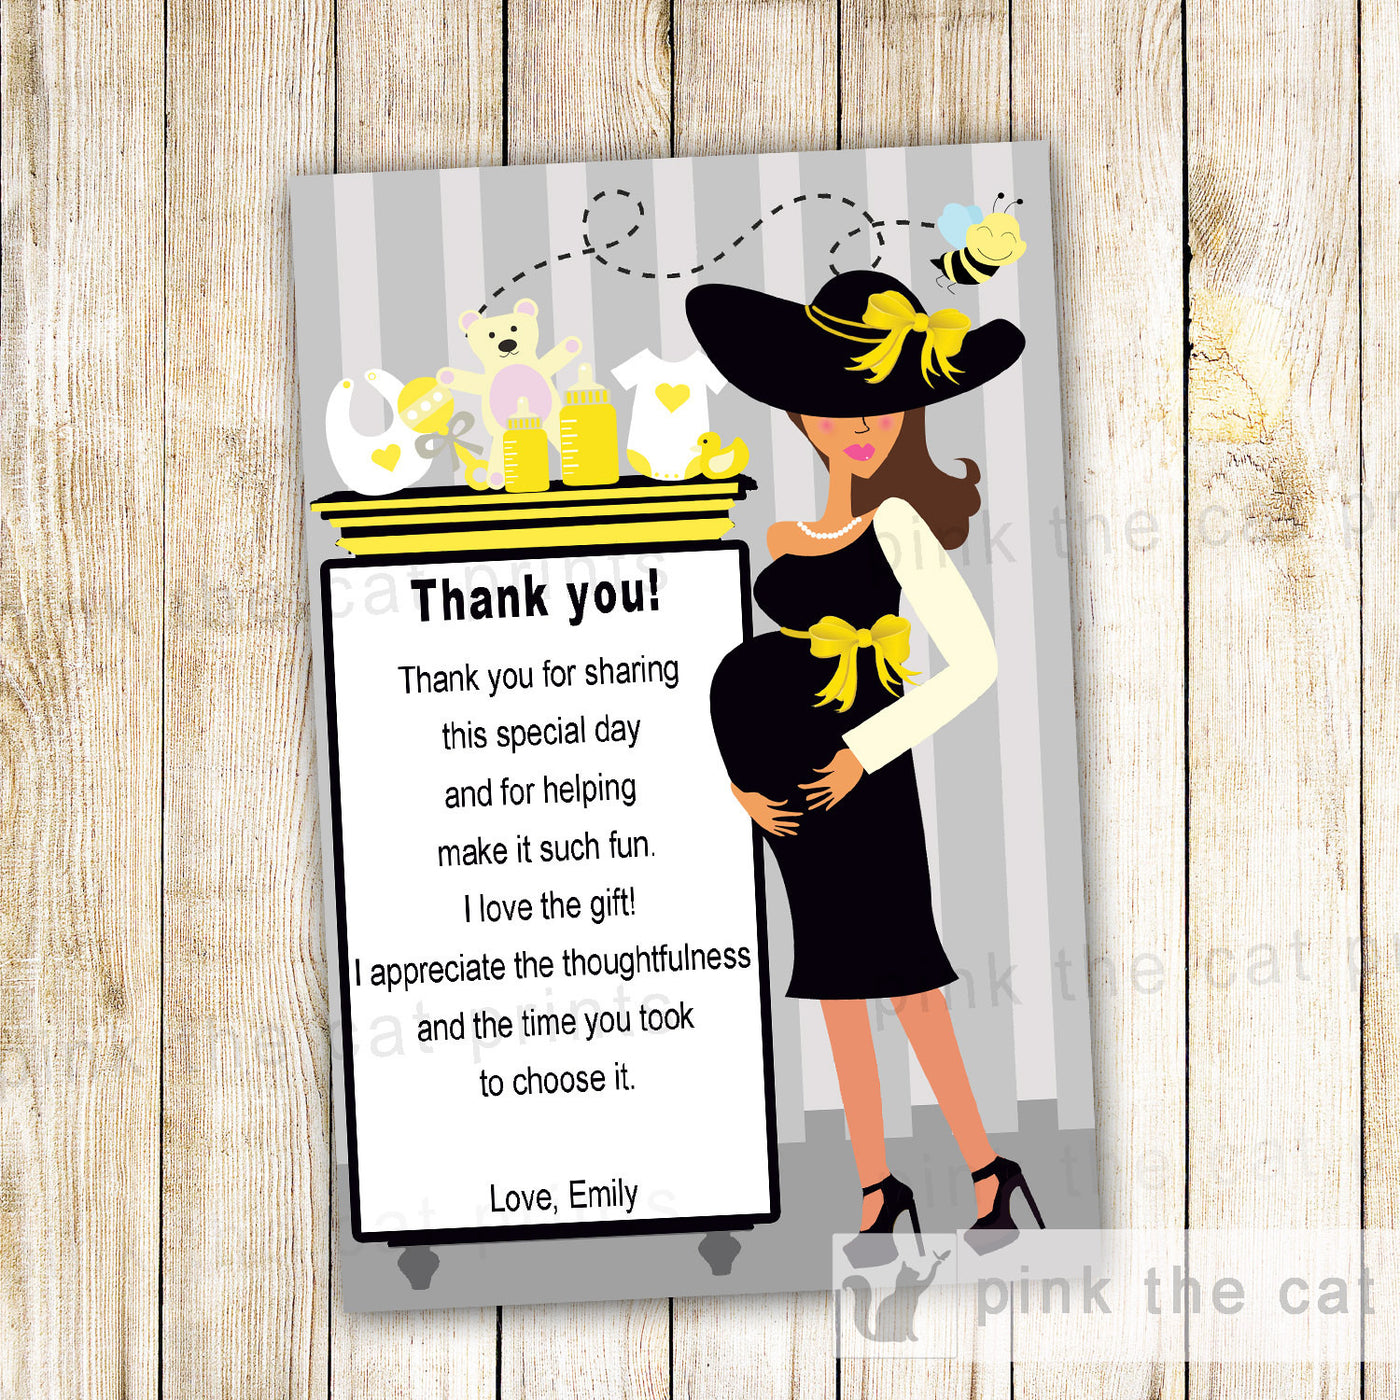 ed5b90b6c257a Bee Thank You Card Note Gender Reveal Baby Shower Pregnant Woman Gifts –  Pink The Cat